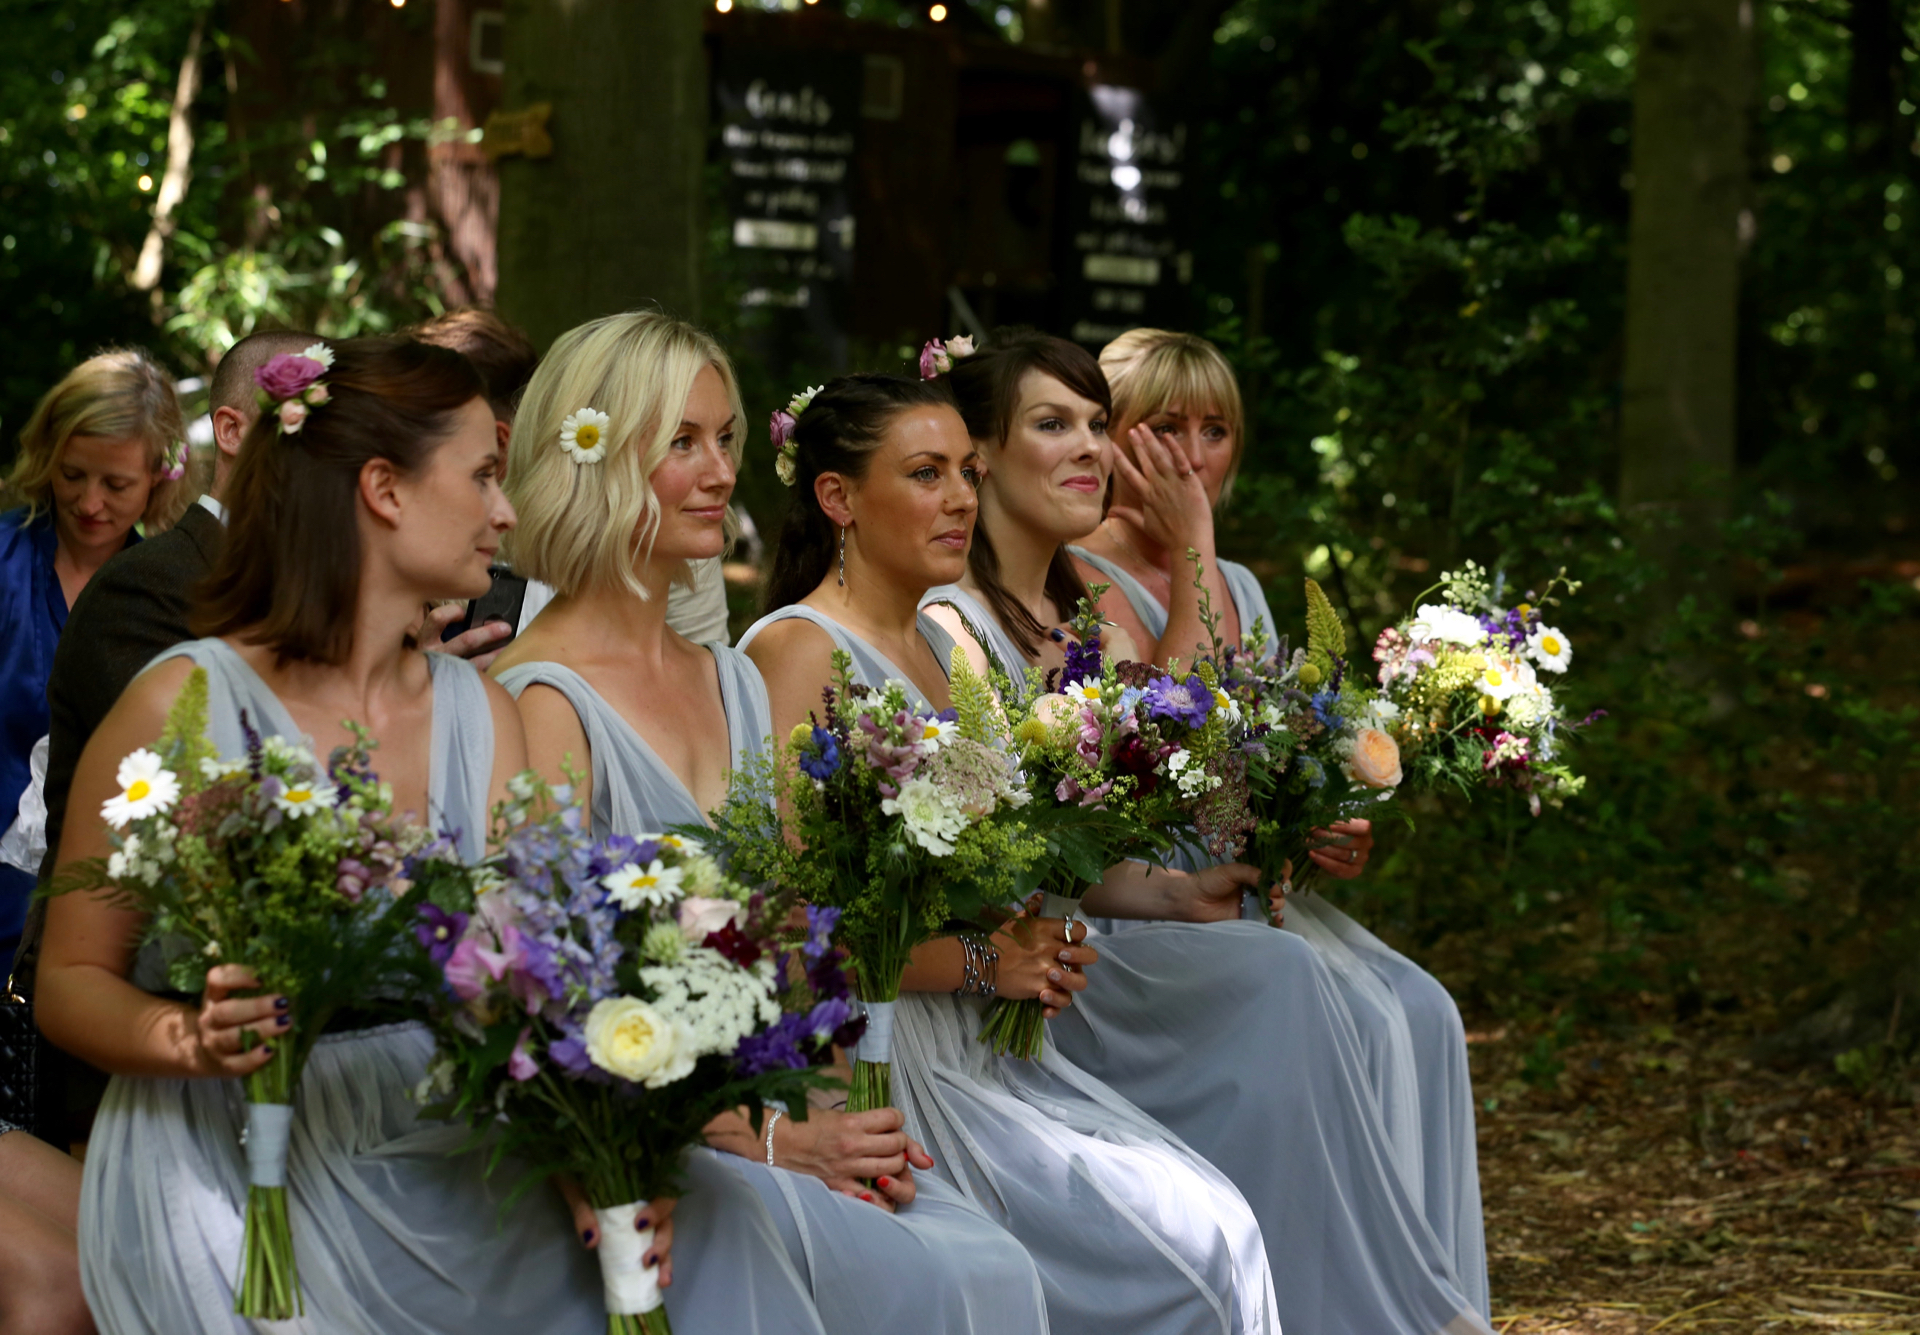 woodland wedding, Lila's Wood, Herdfordshire